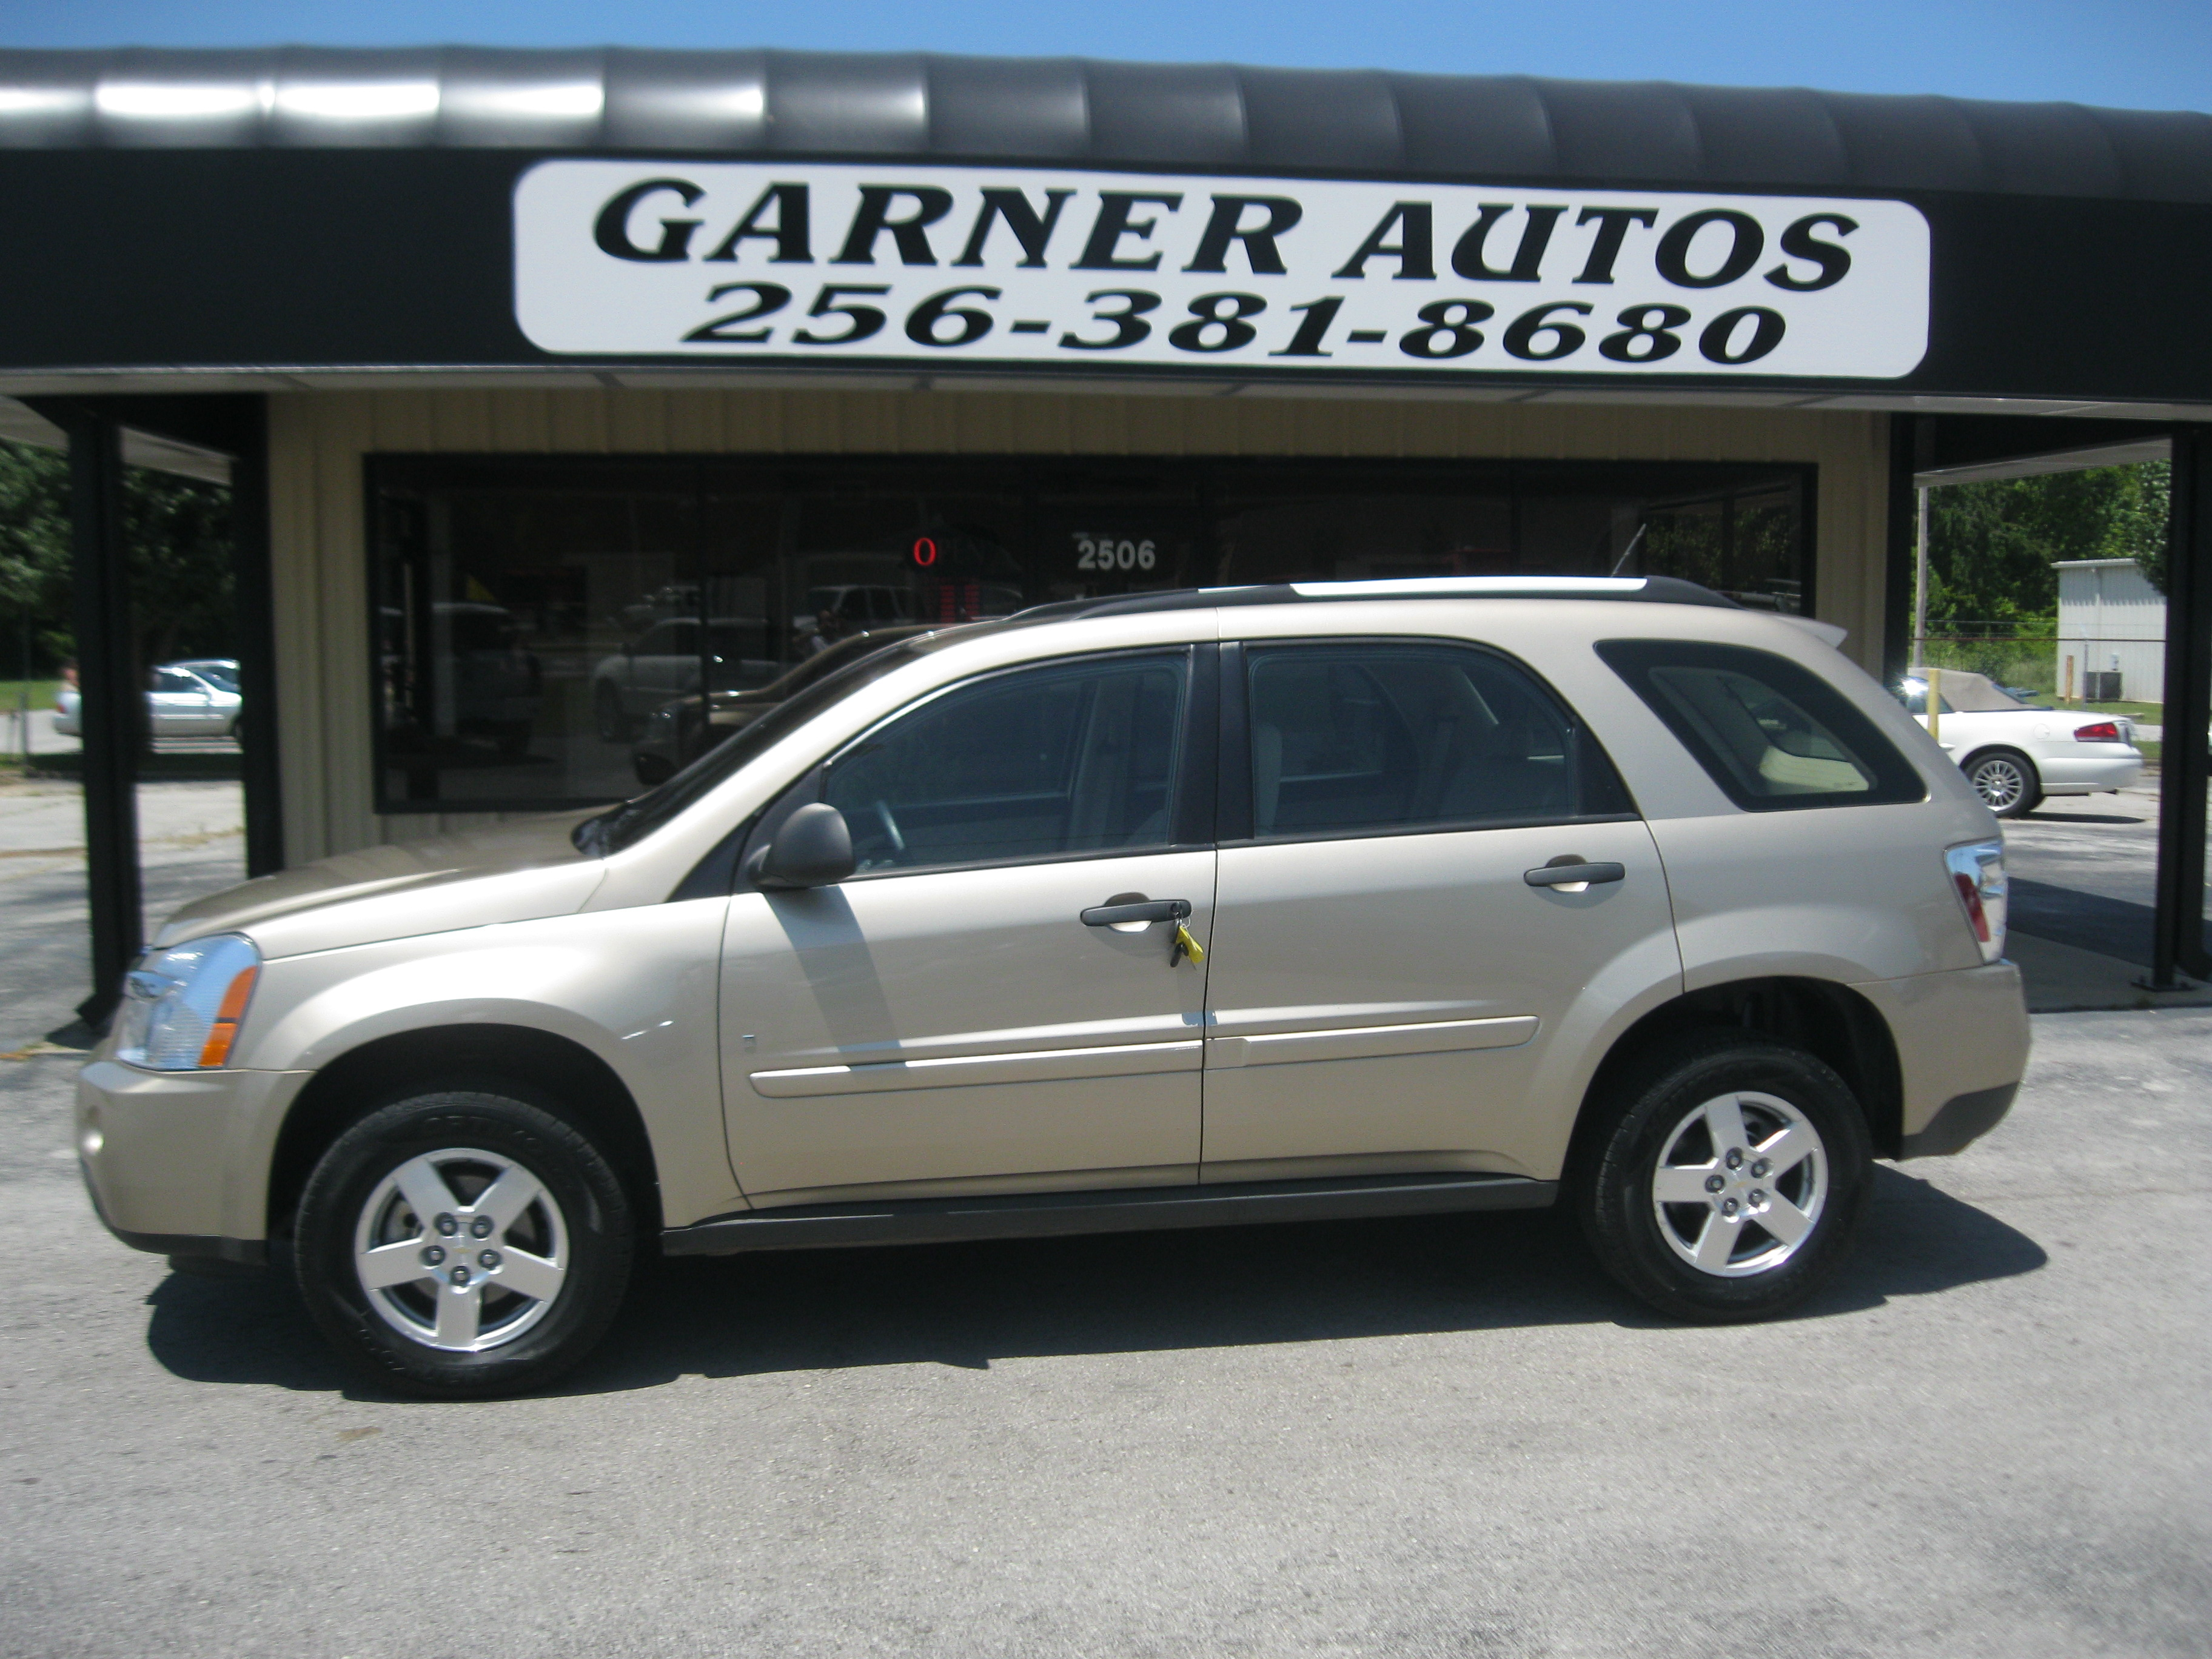 chevrolet 2008 chevrolet equinox 2008 chevrolet equinox image 10. Cars Review. Best American Auto & Cars Review